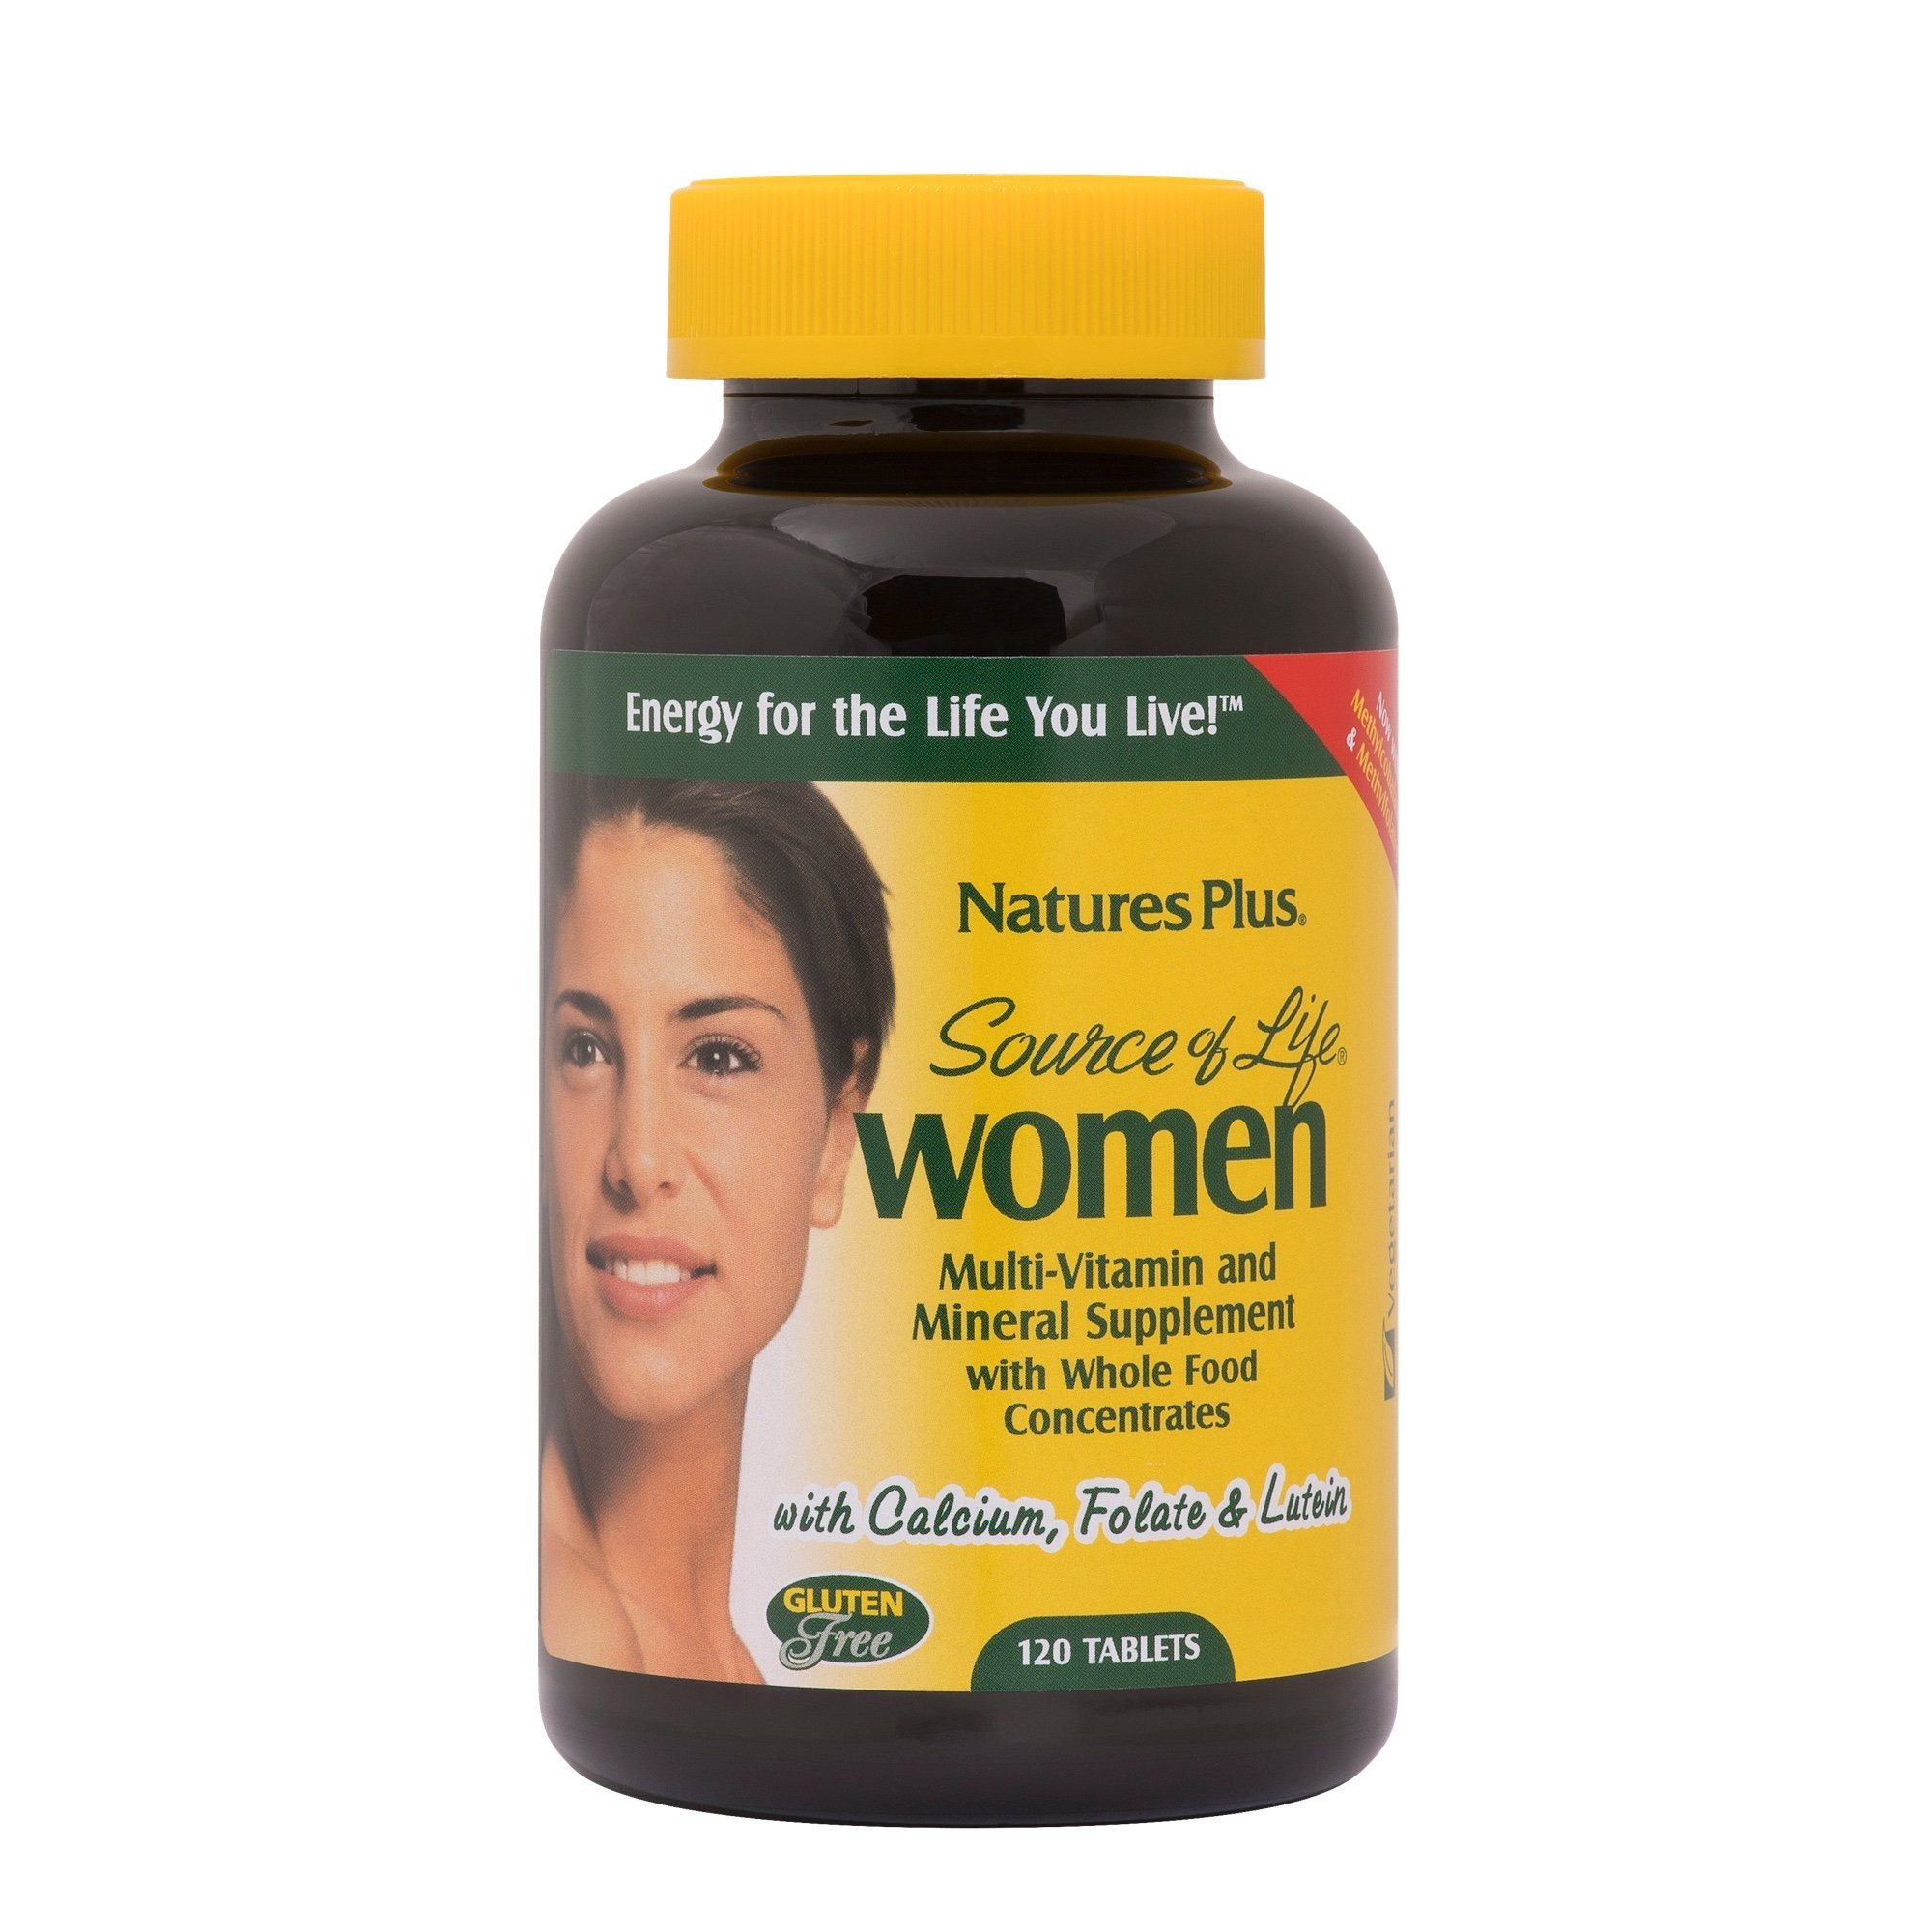 NaturesPlus Source of Life Women Multivitamin - 120 Vegetarian Tablets - Whole Foods, Enzymes & Minerals - Overall Health, Energy - Gluten-Free - 60 Servings